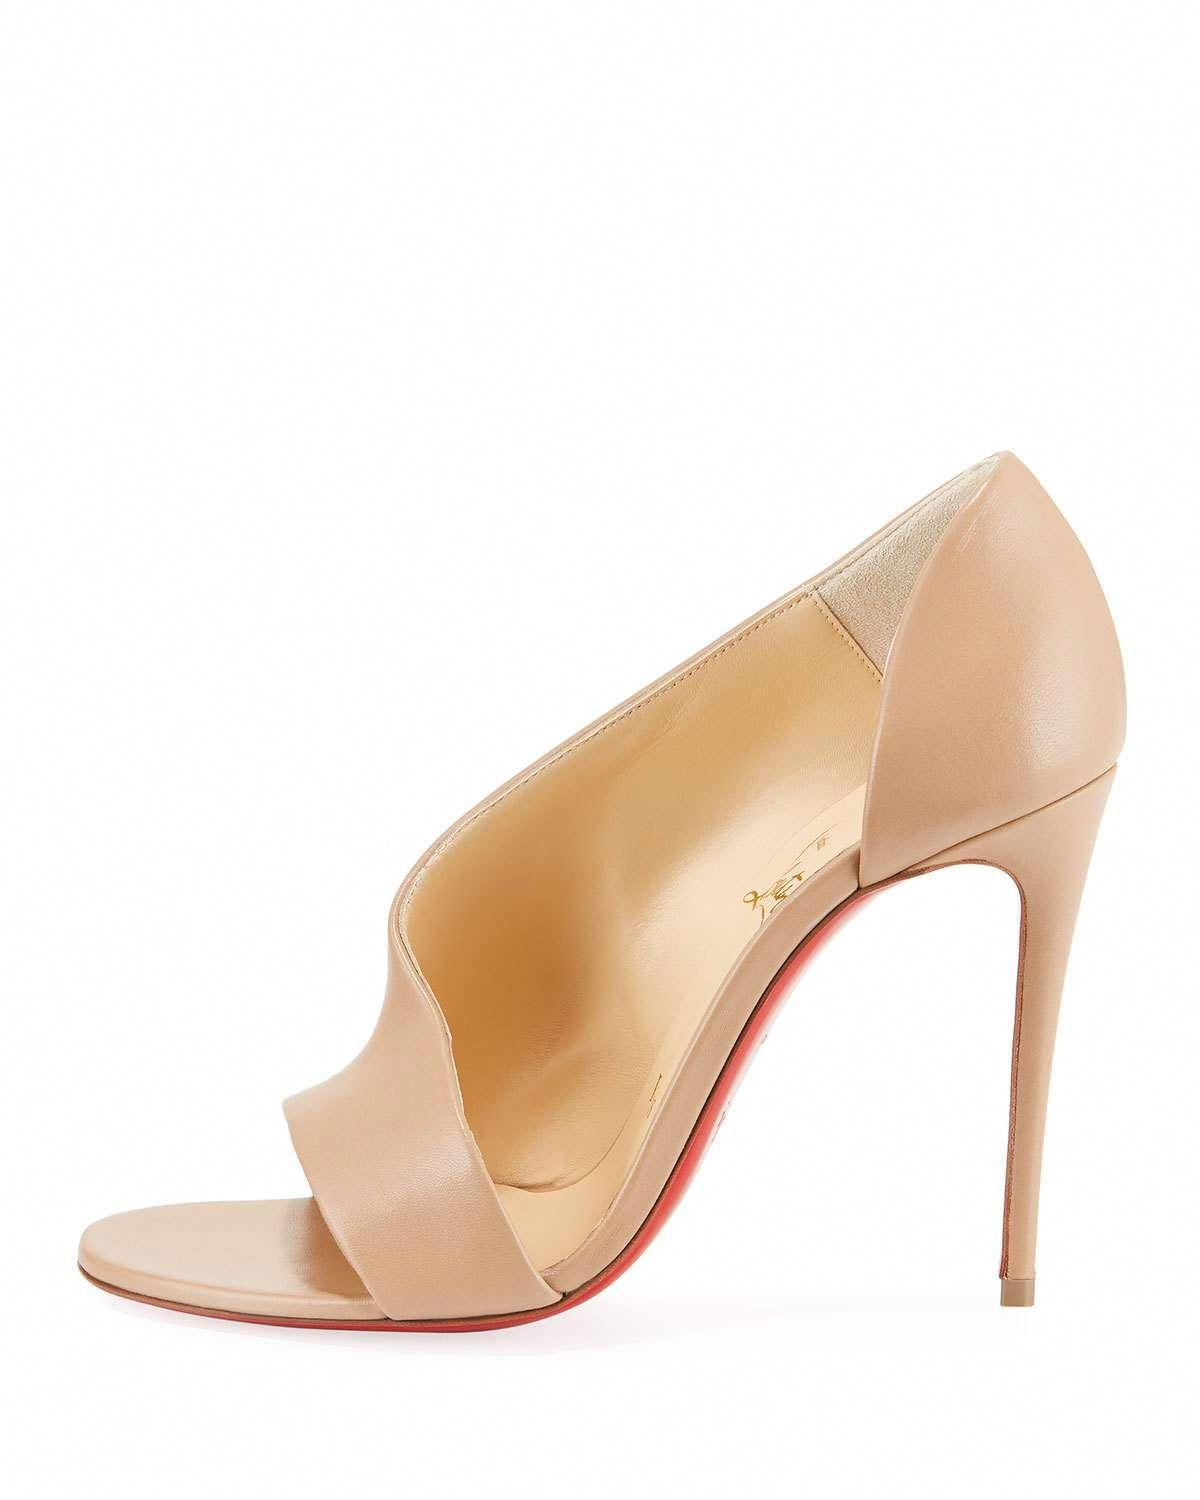 143eb7dd1 Christian Louboutin Phoebe Asymmetric Leather Red Sole Pumps   ChristianLouboutin